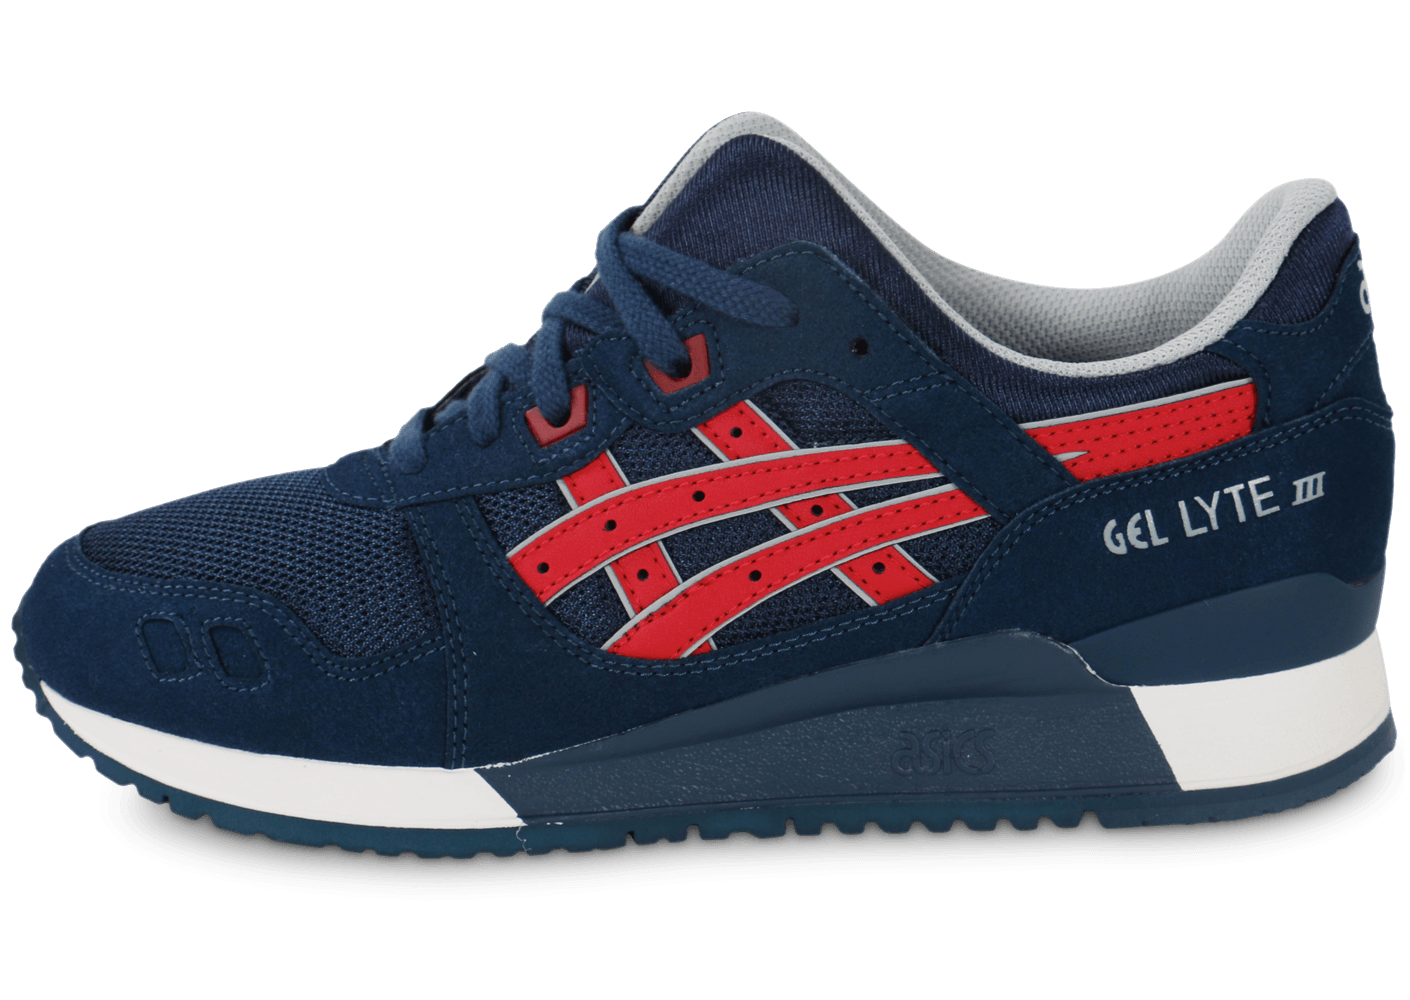 competitive price 554fe 493ae asics gel lyte bleu et rouge asics gel lyte bleu et rouge huarache pas cher femme  blanche